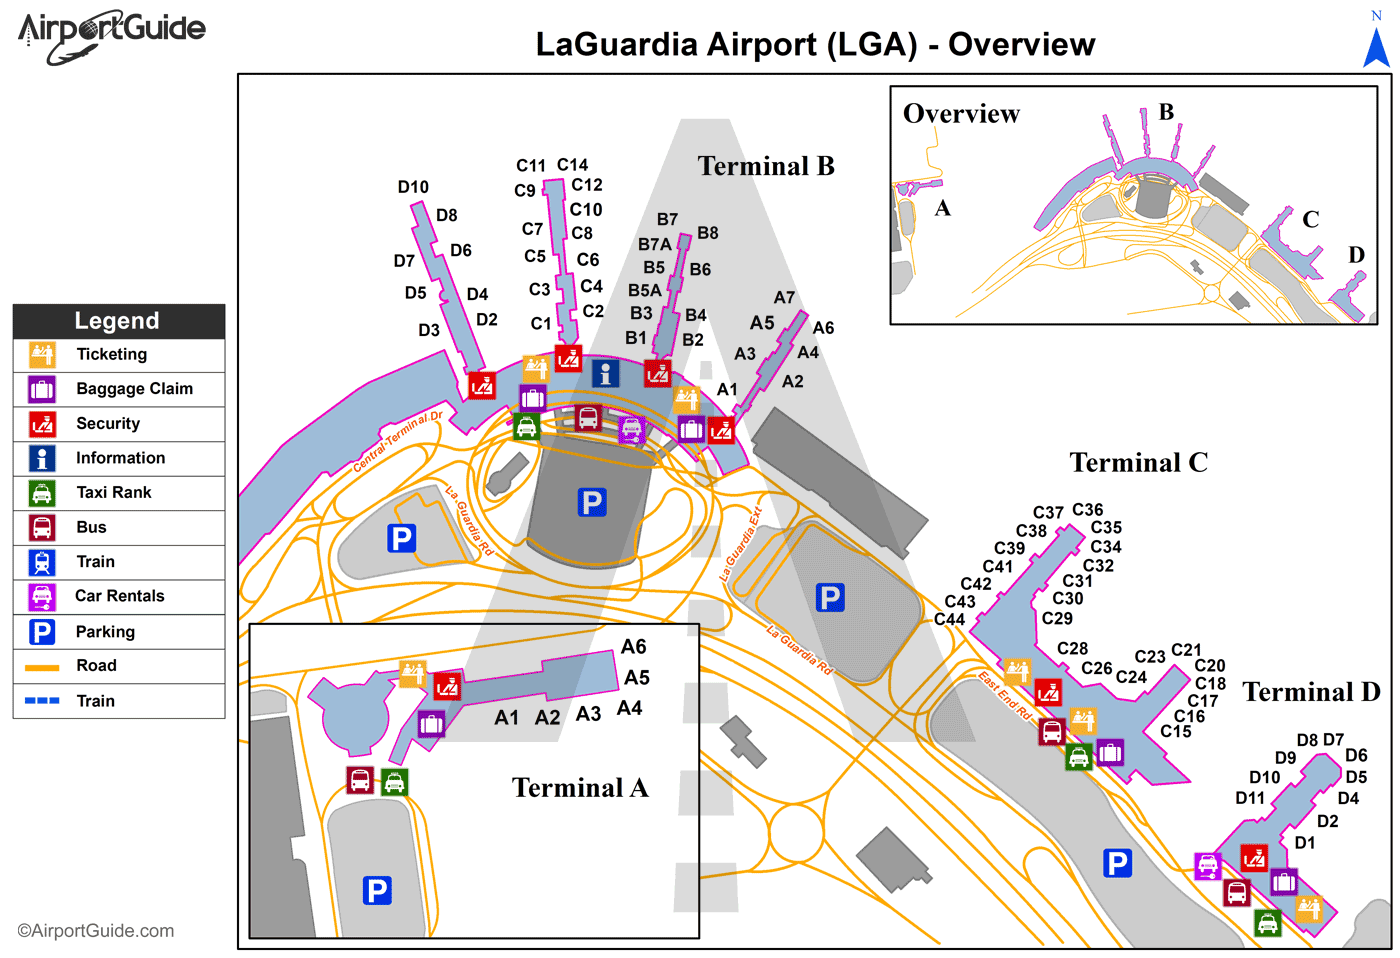 New York - Laguardia (LGA) Airport Terminal Map - Overview